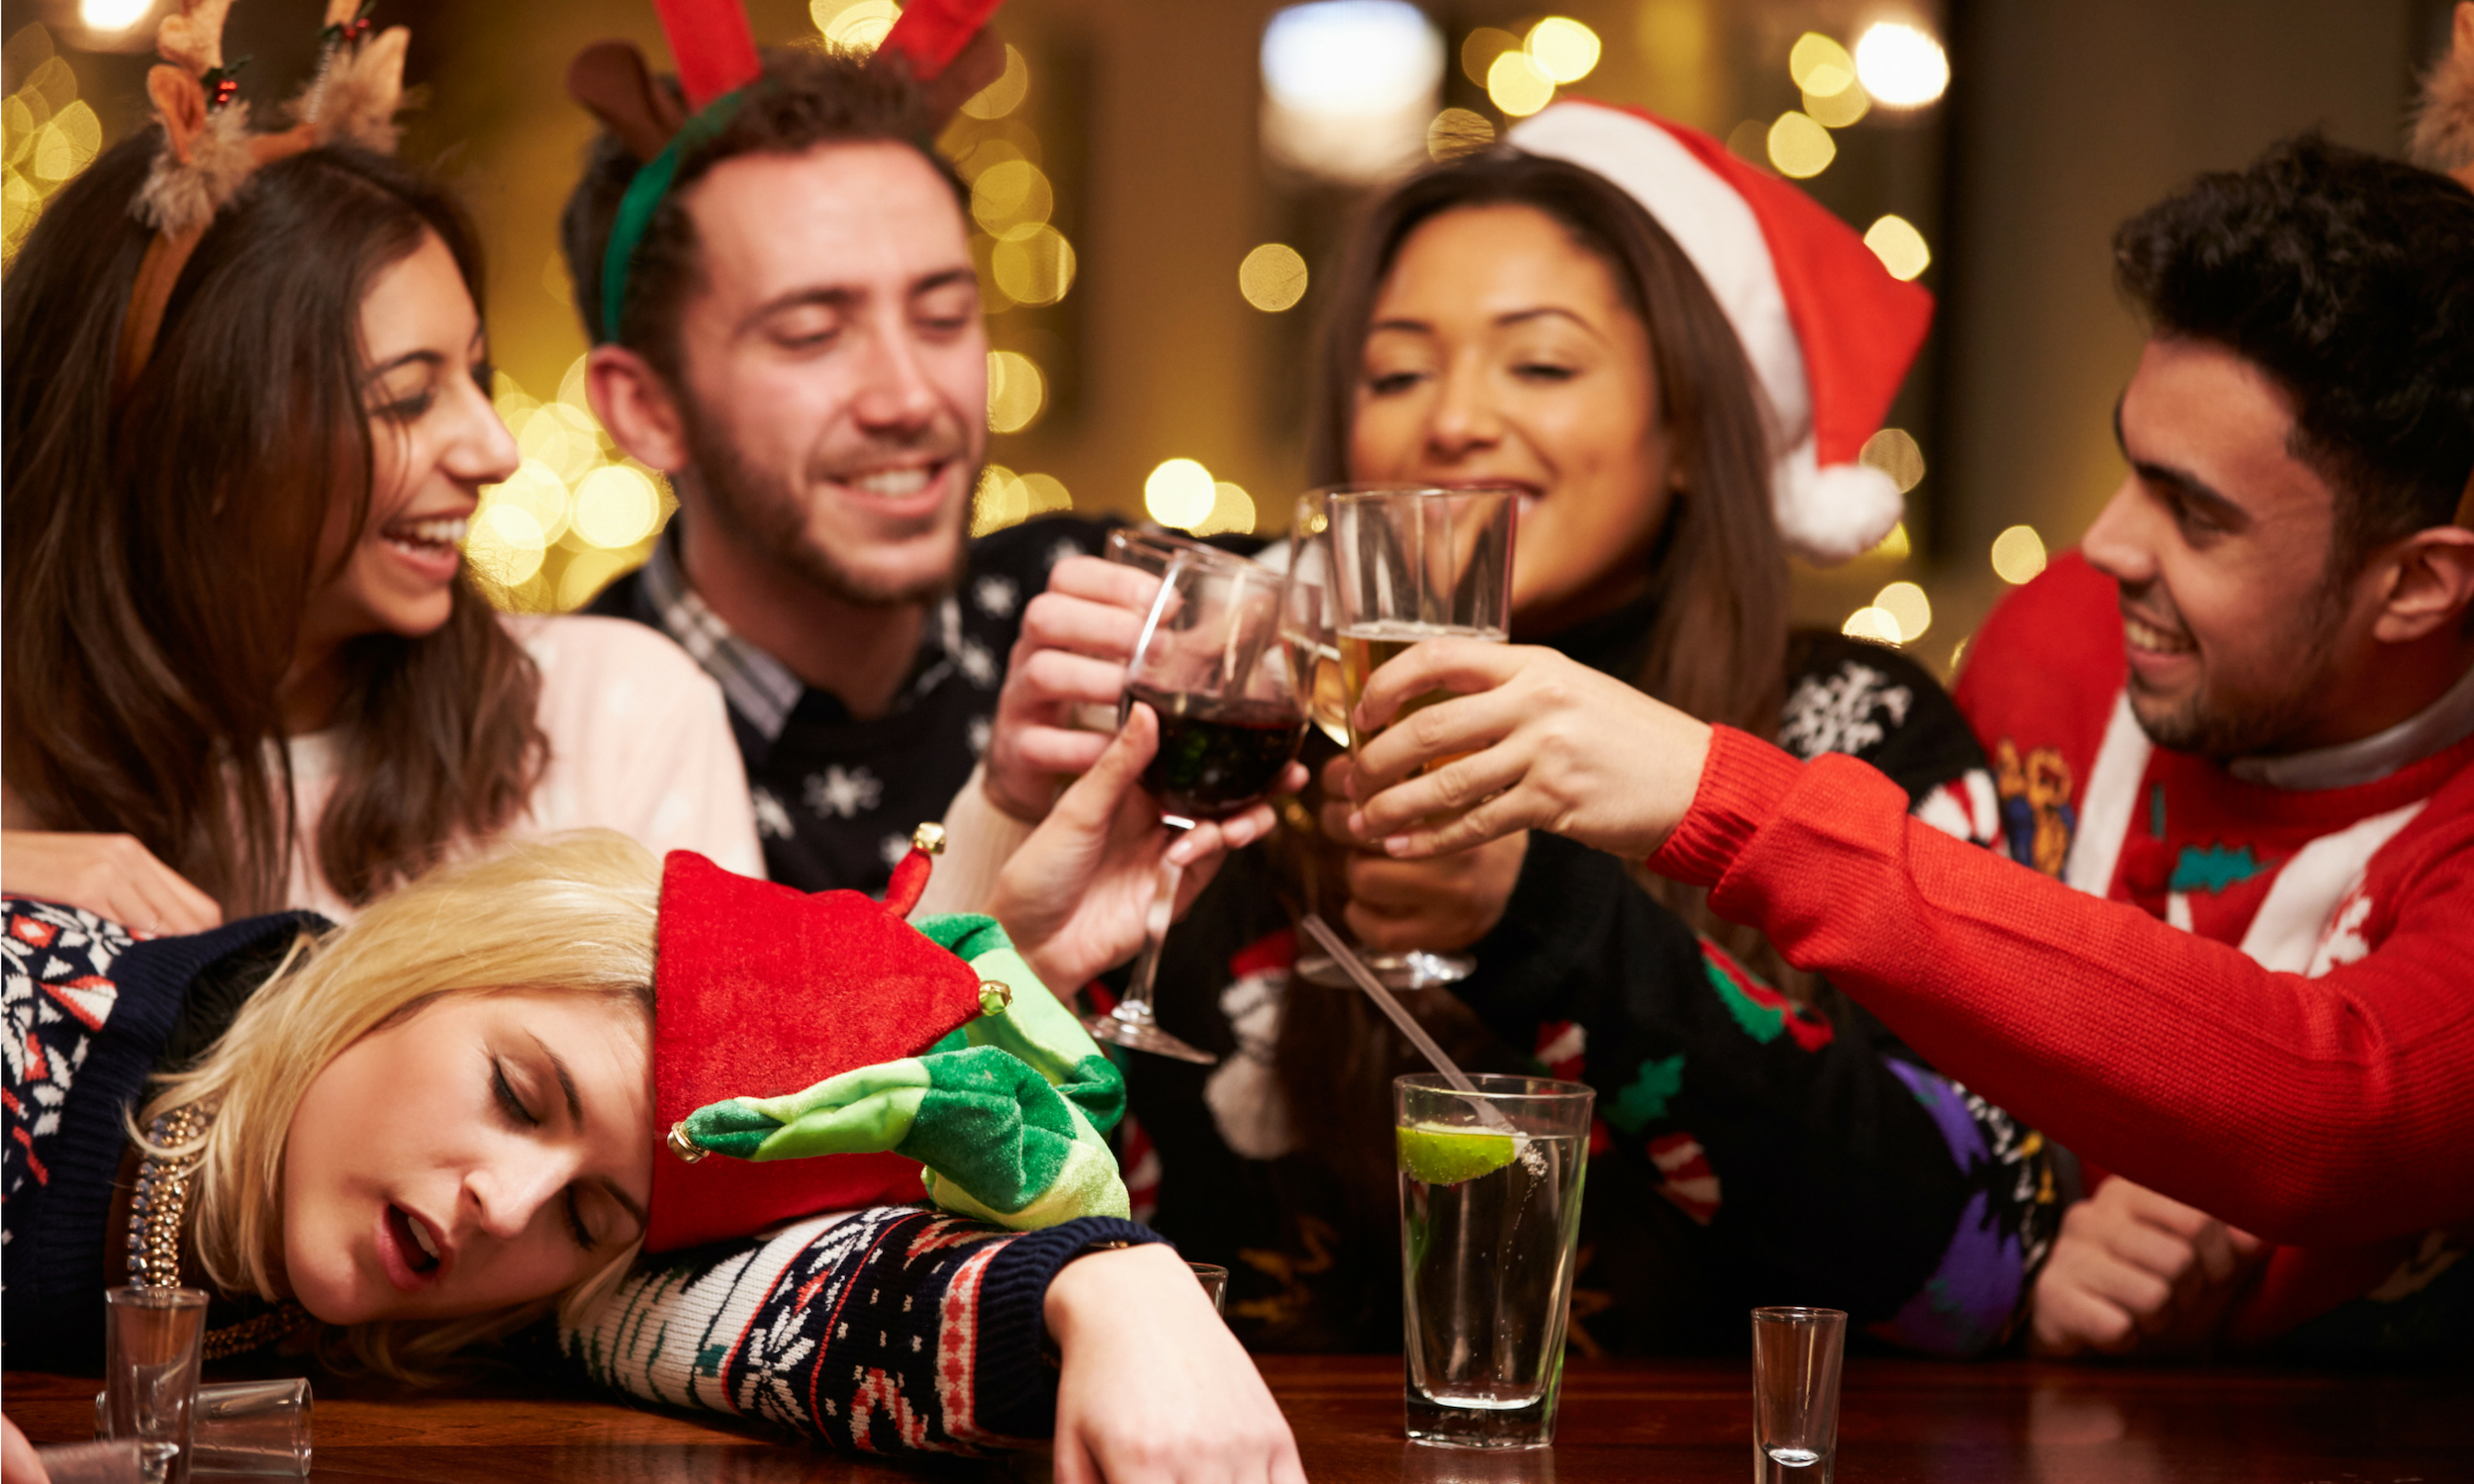 Drunk Christmas Party.png.crdownload.png